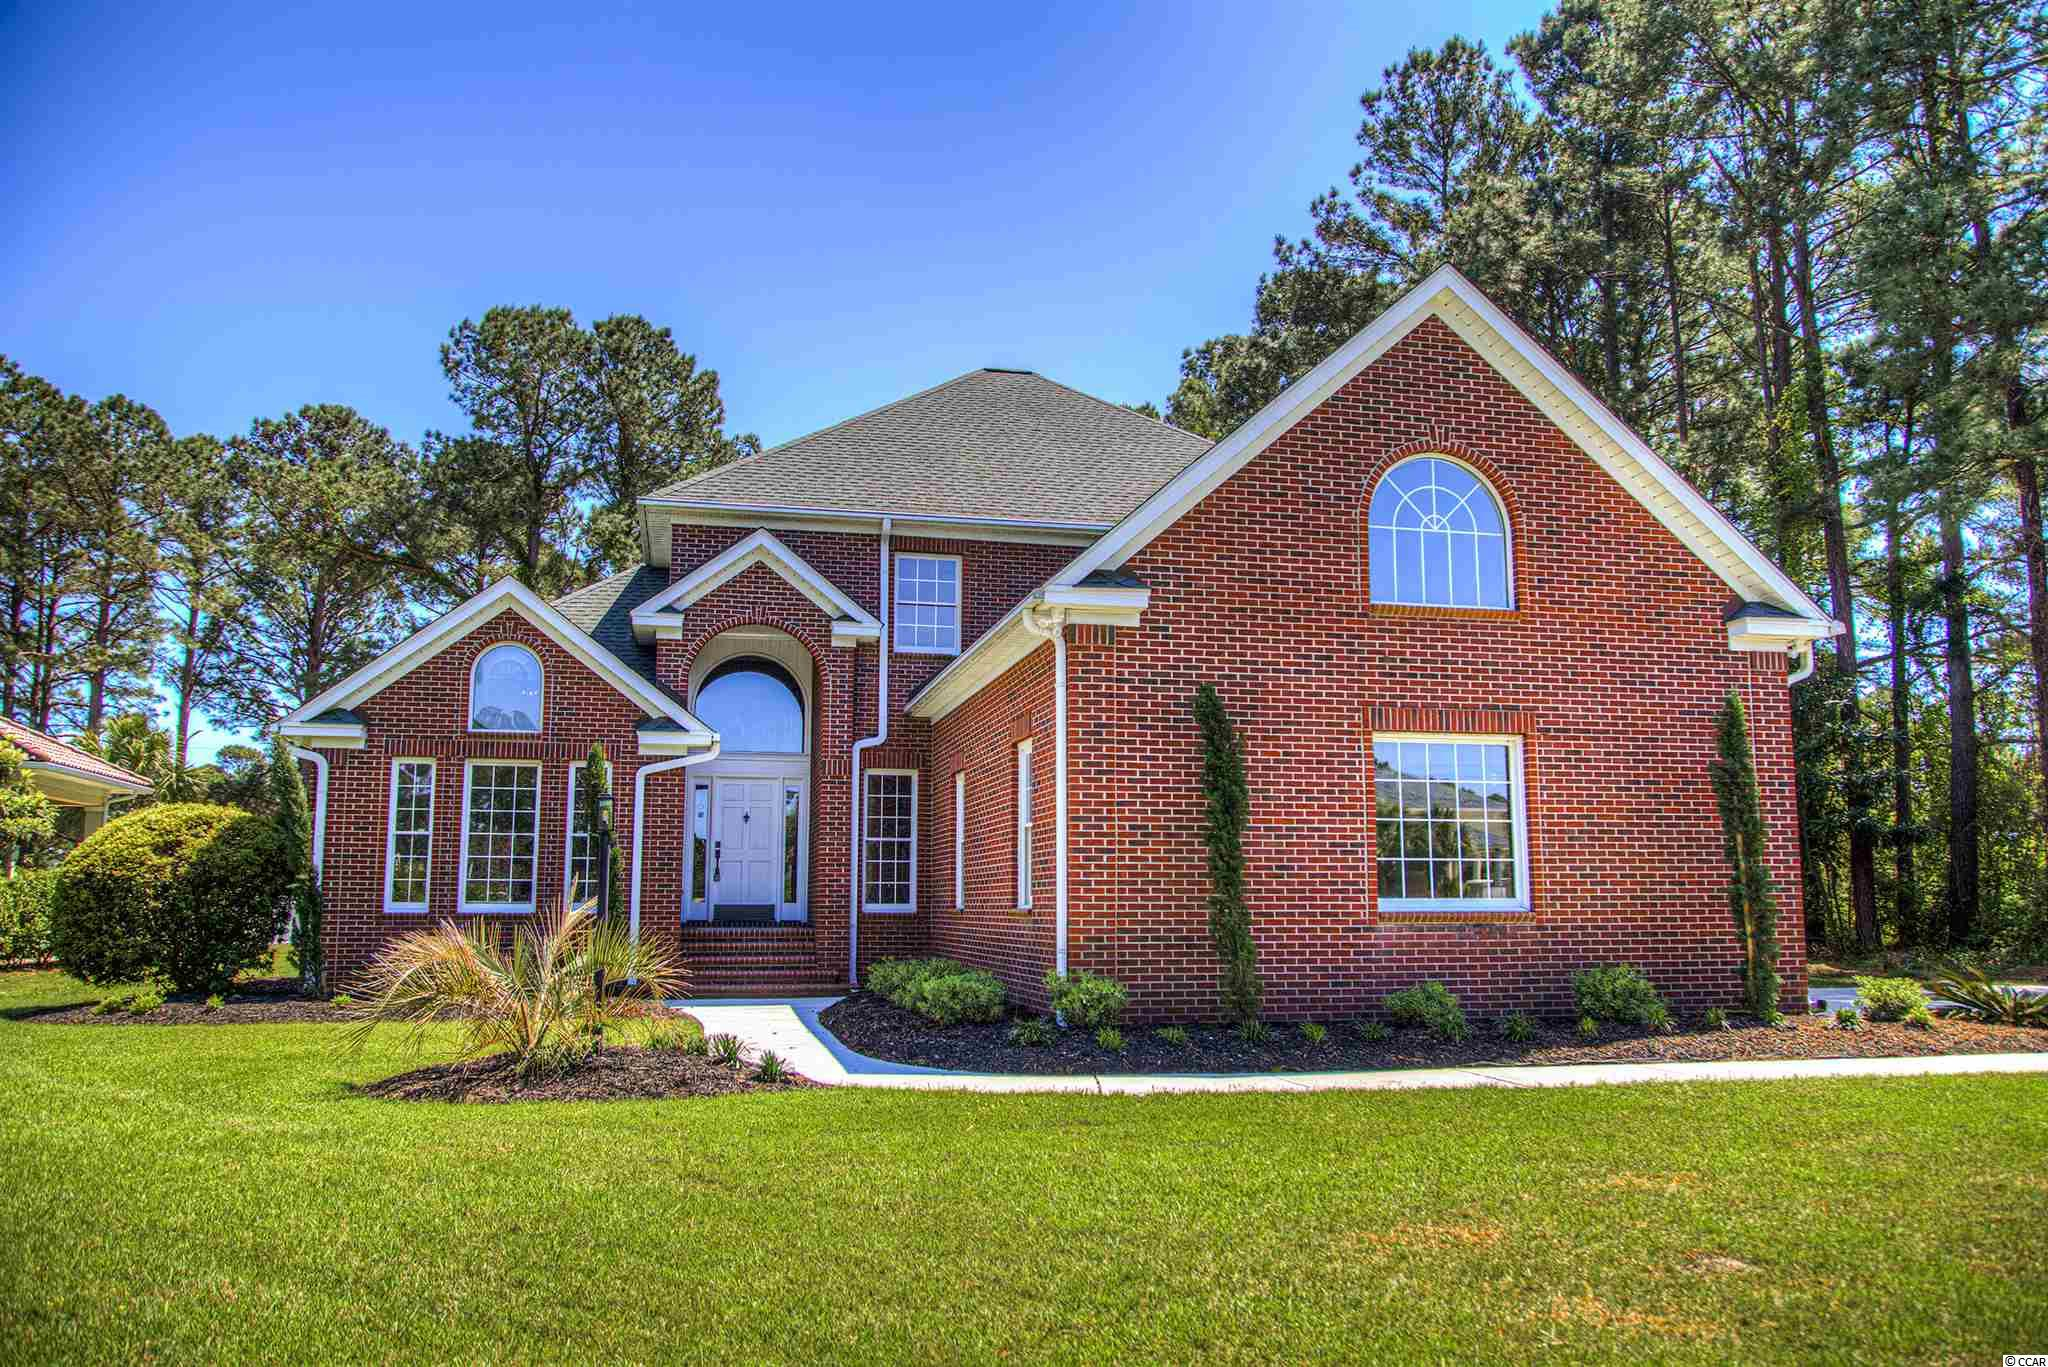 Beautiful Plantation Point Home. All brick, overlooking the golf course and has so much potential. Large 5 bedroom 3.5 bath with room to grow if you want. Side load garage give you all the parking you might need. Main floor offers formal living room with fireplace, formal dining room, office/den, great room, breakfast nook kitchen along with a huge master suite and large walk in closets and lovely well laid out master bath